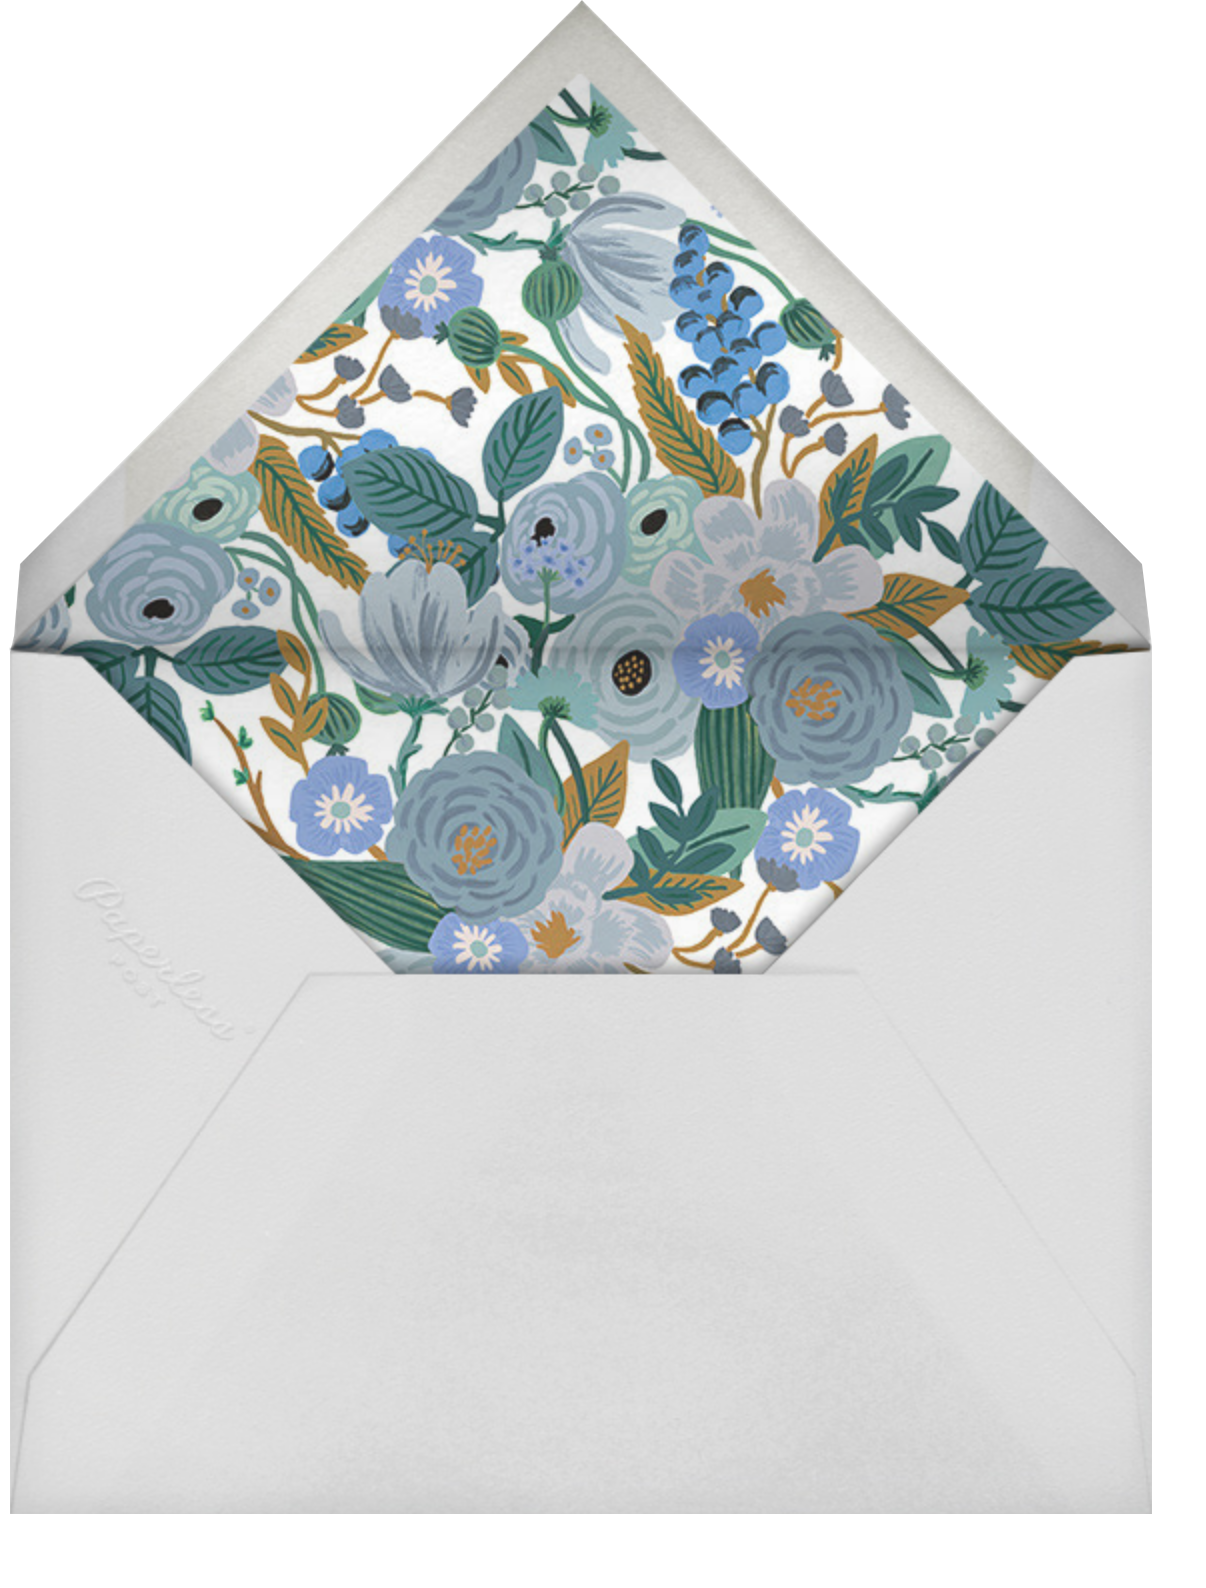 Autumn Knoll - Rifle Paper Co. - Bridal shower - envelope back